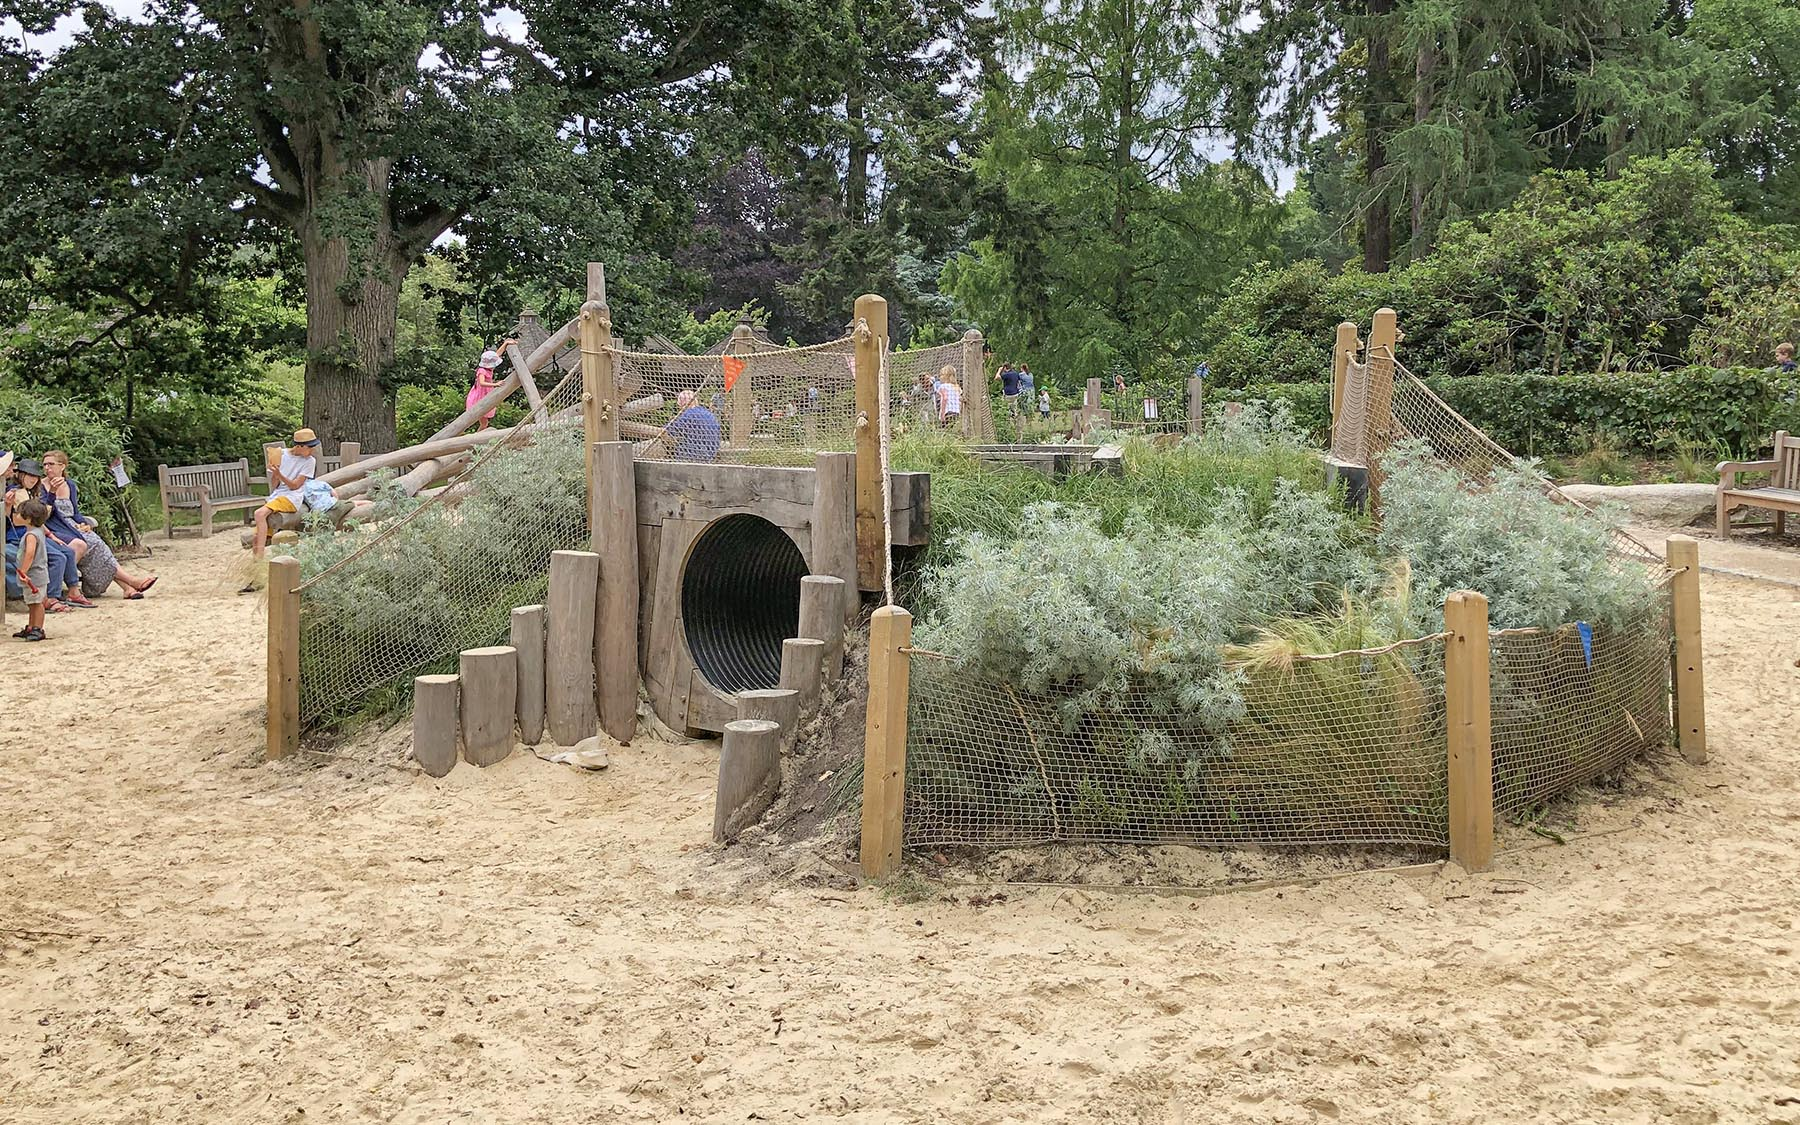 playground equipment tunnels and mounds